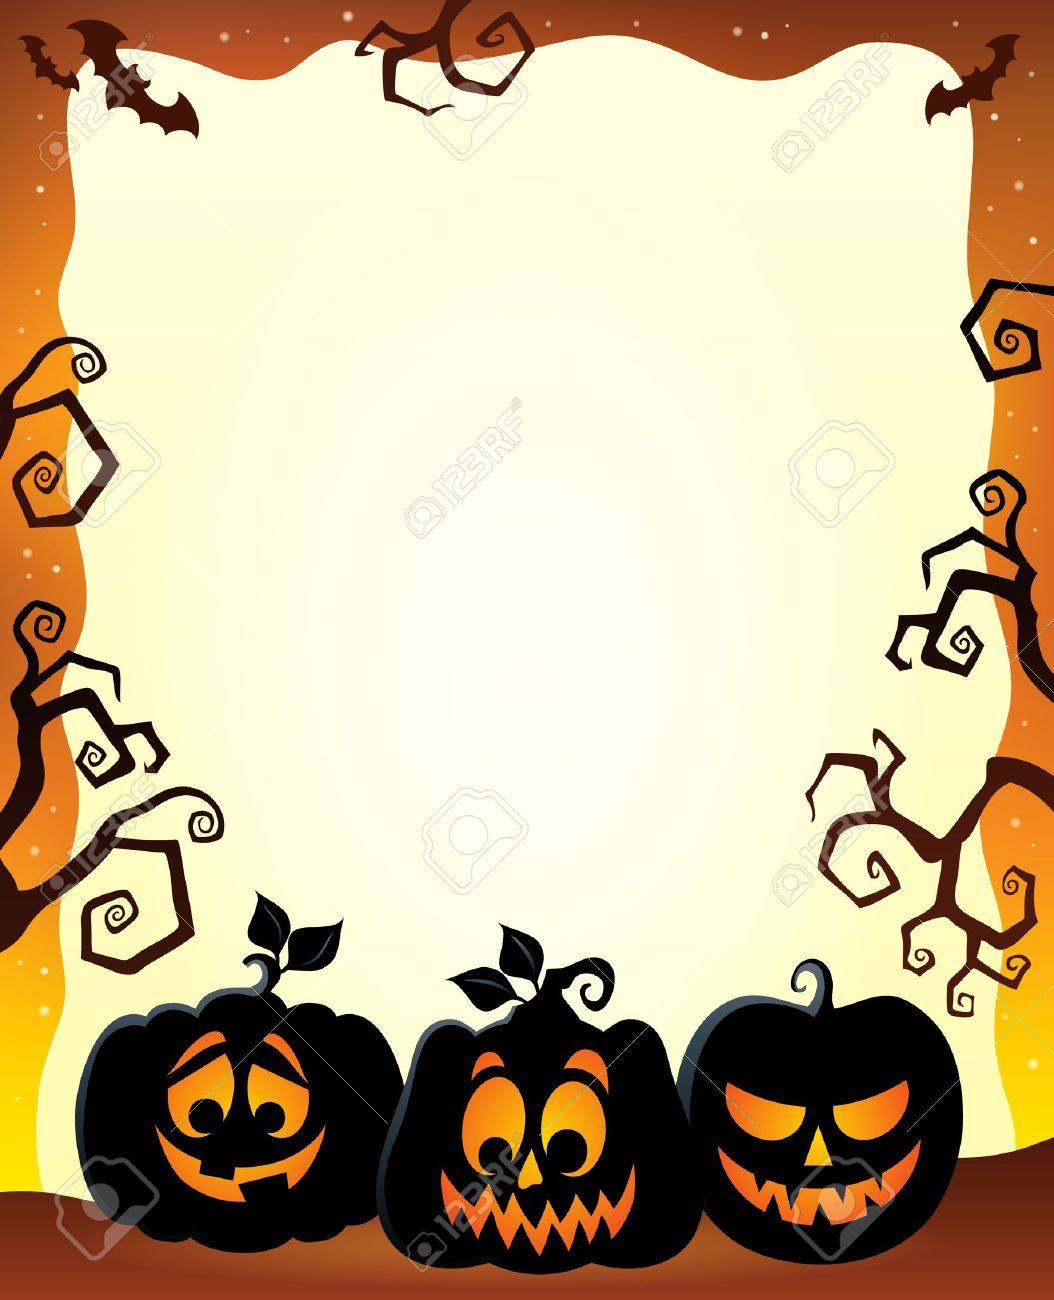 Frame with Halloween pumpkin silhouettes Stock Vector - 44103012